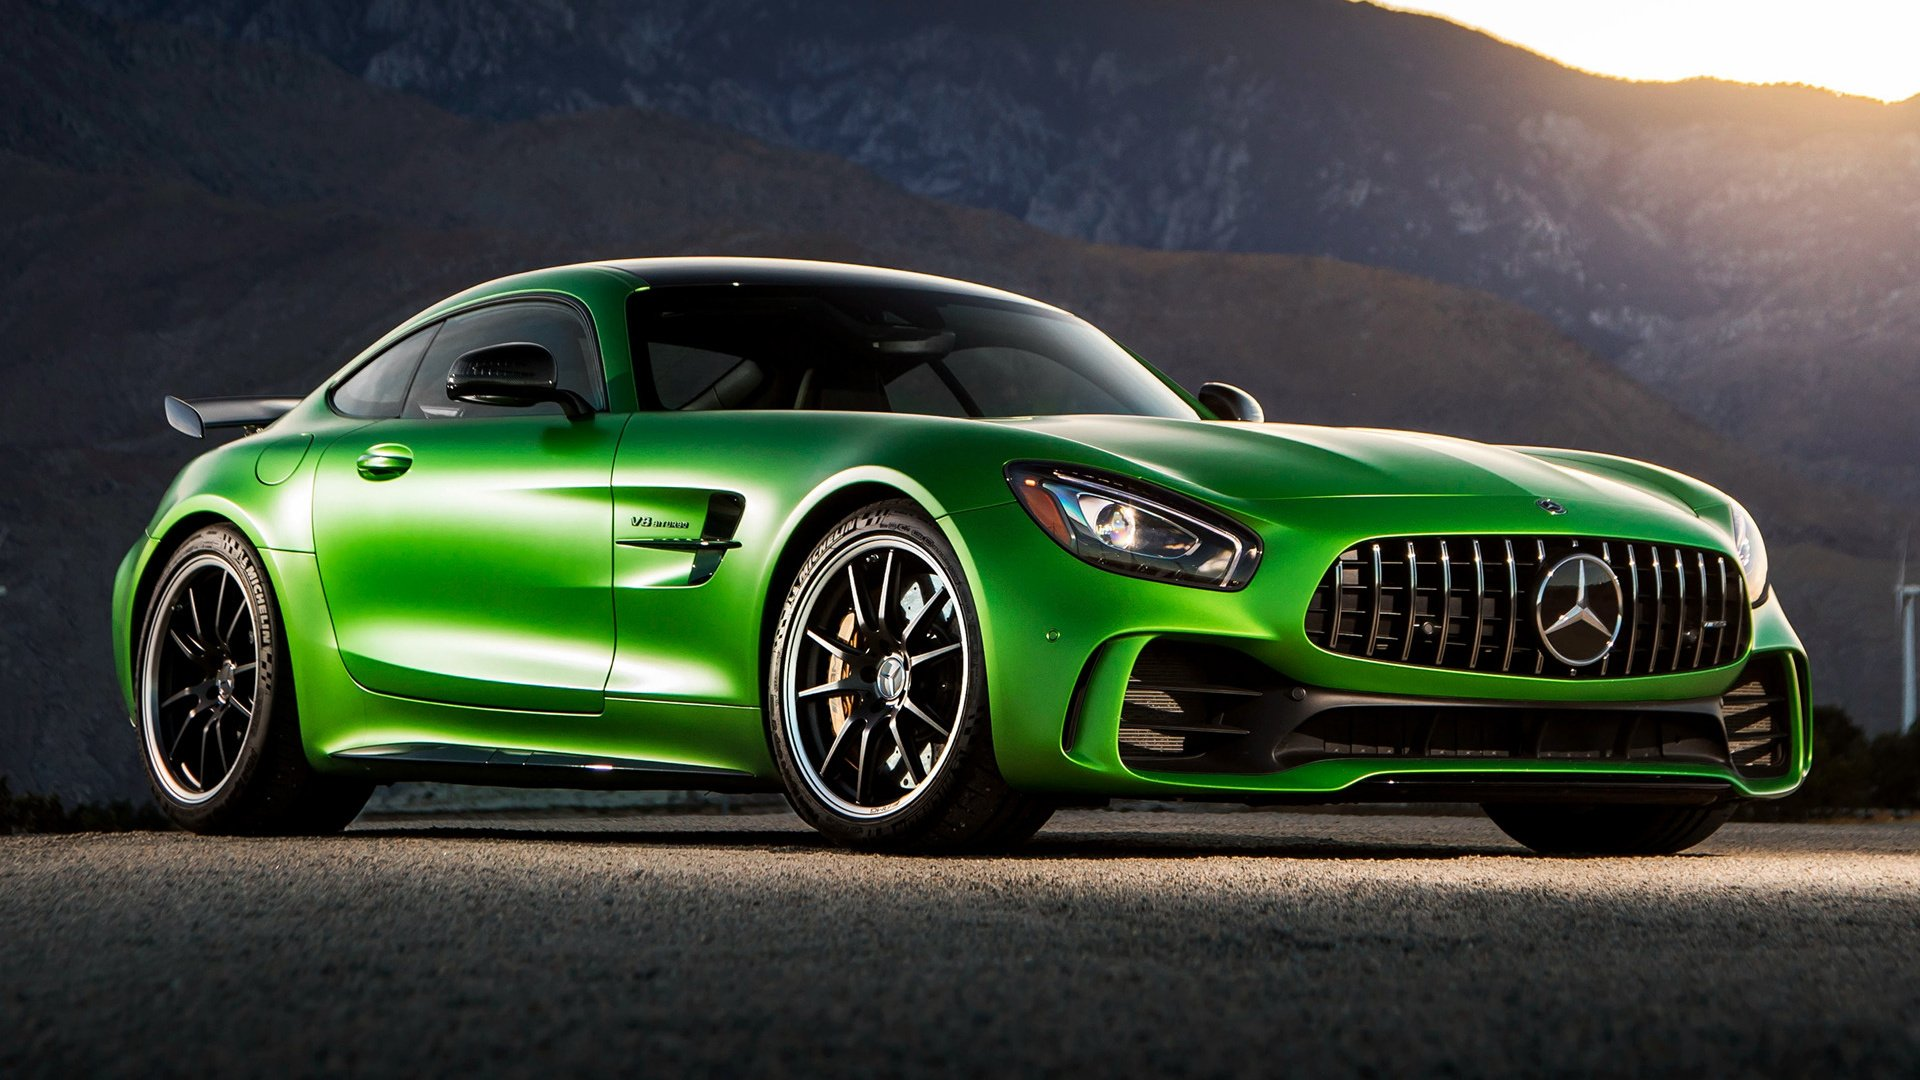 23 Mercedes Amg Gt R Hd Wallpapers Background Images Wallpaper Abyss